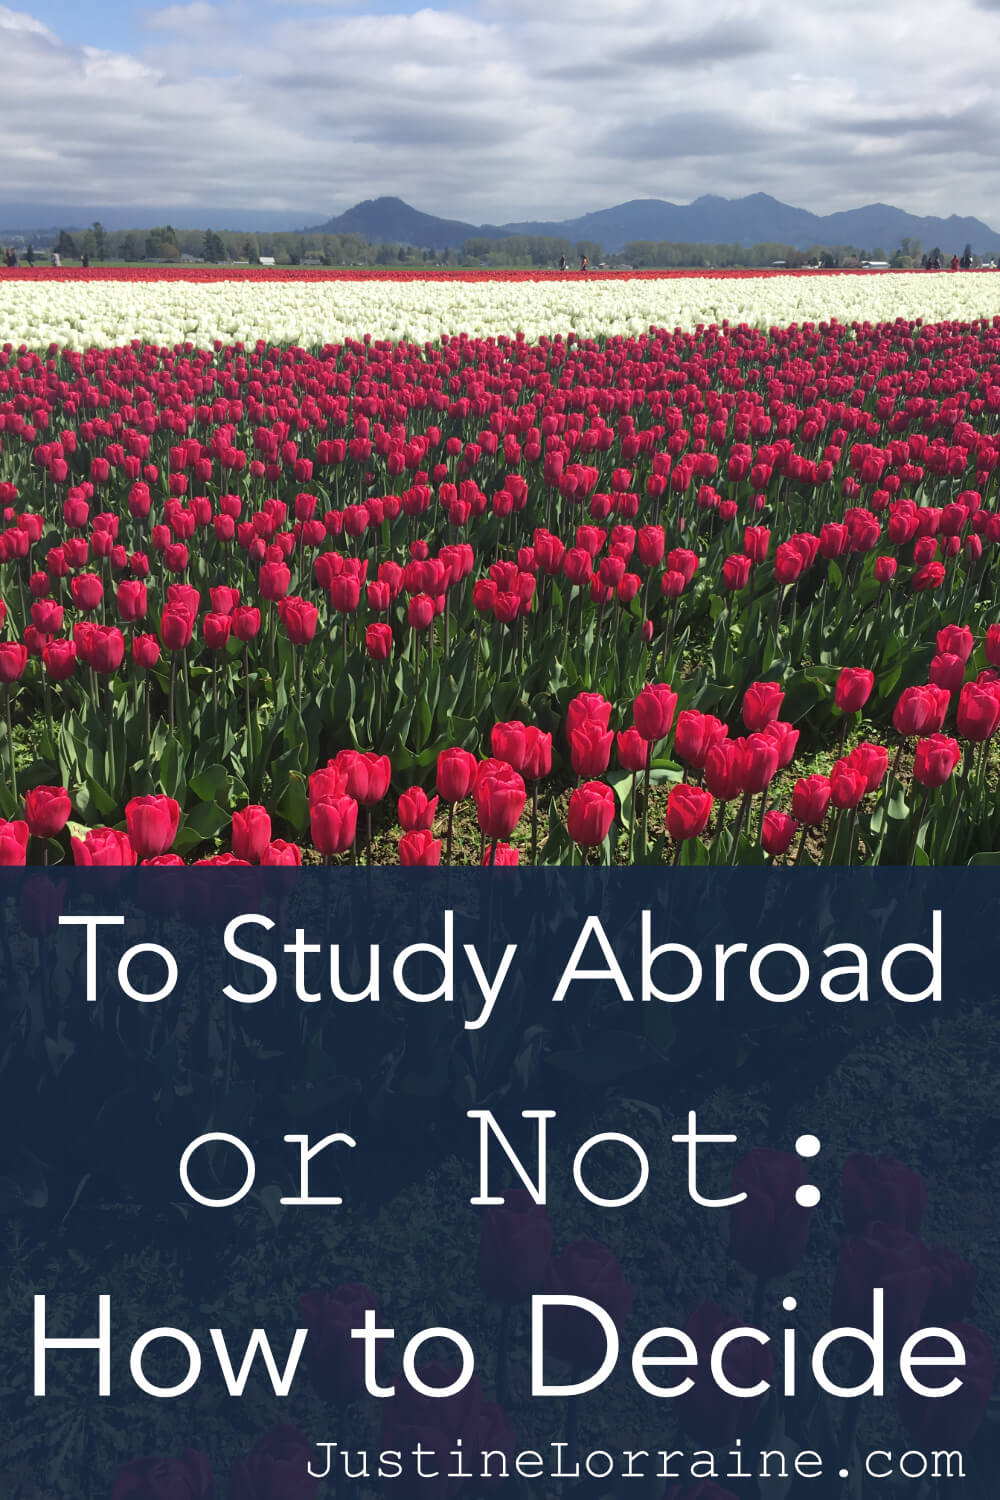 Choosing whether or not to study abroad is hard. Here are some questions to help make the decision easier.